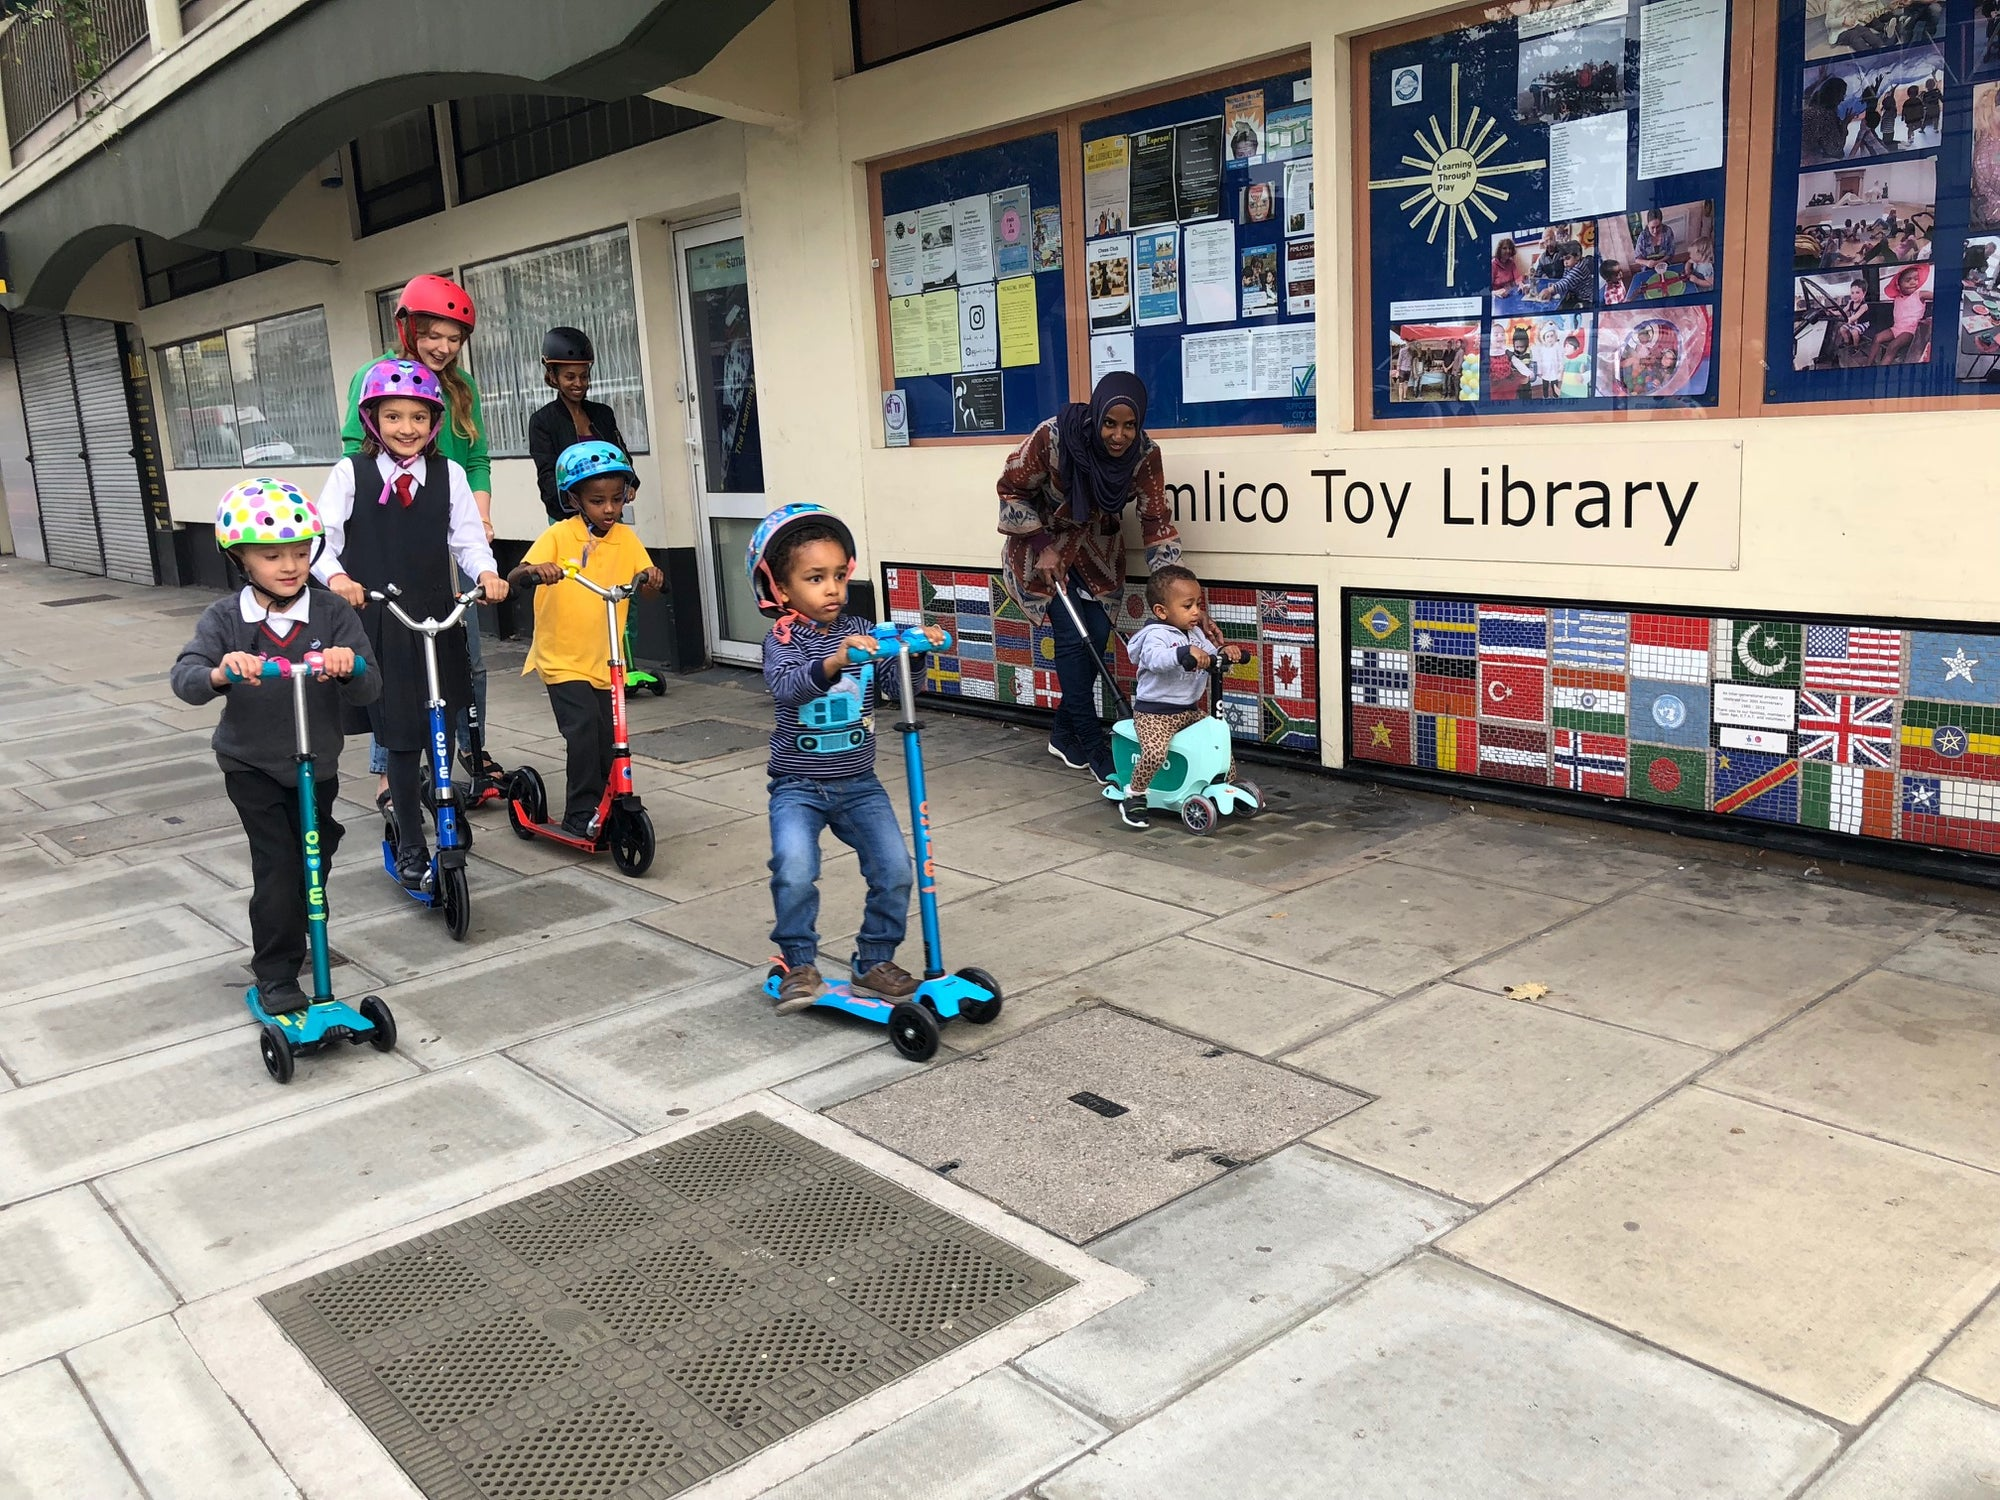 Scooter Aid & Pimlico Toy Library